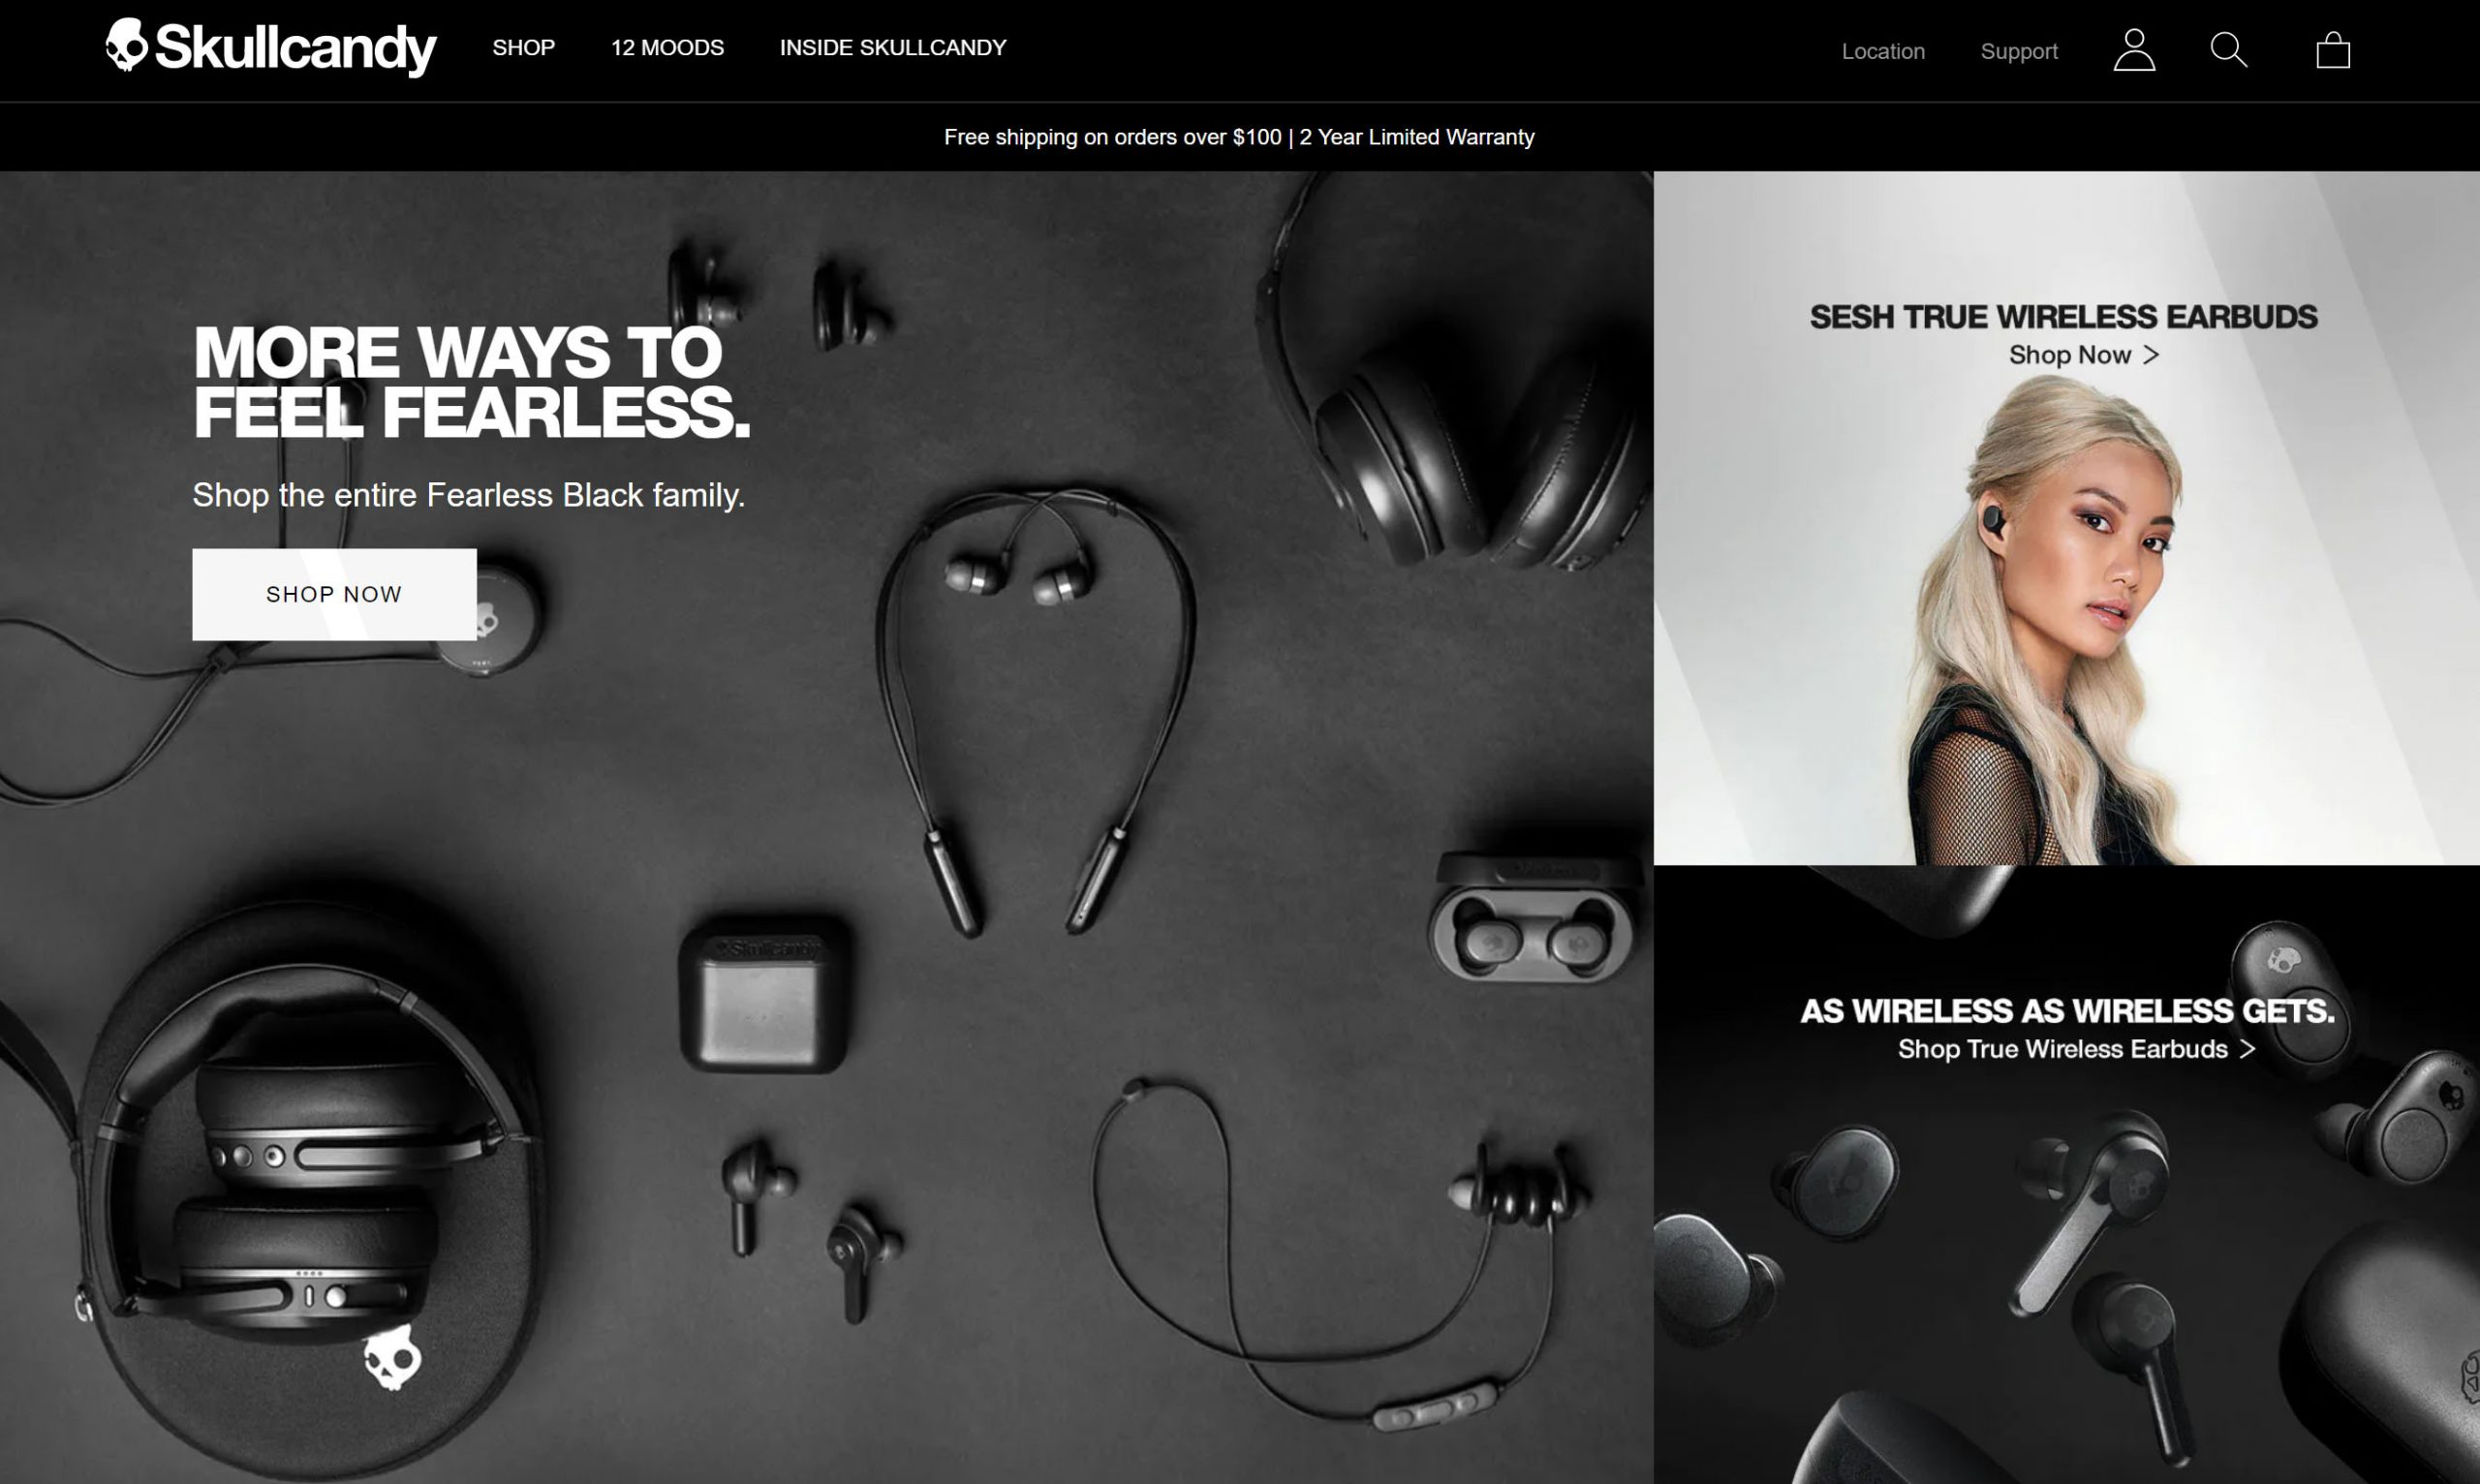 skull candy scaled 1 - Divi eCommerce – Our Best eCommerce Design Layout (2020)